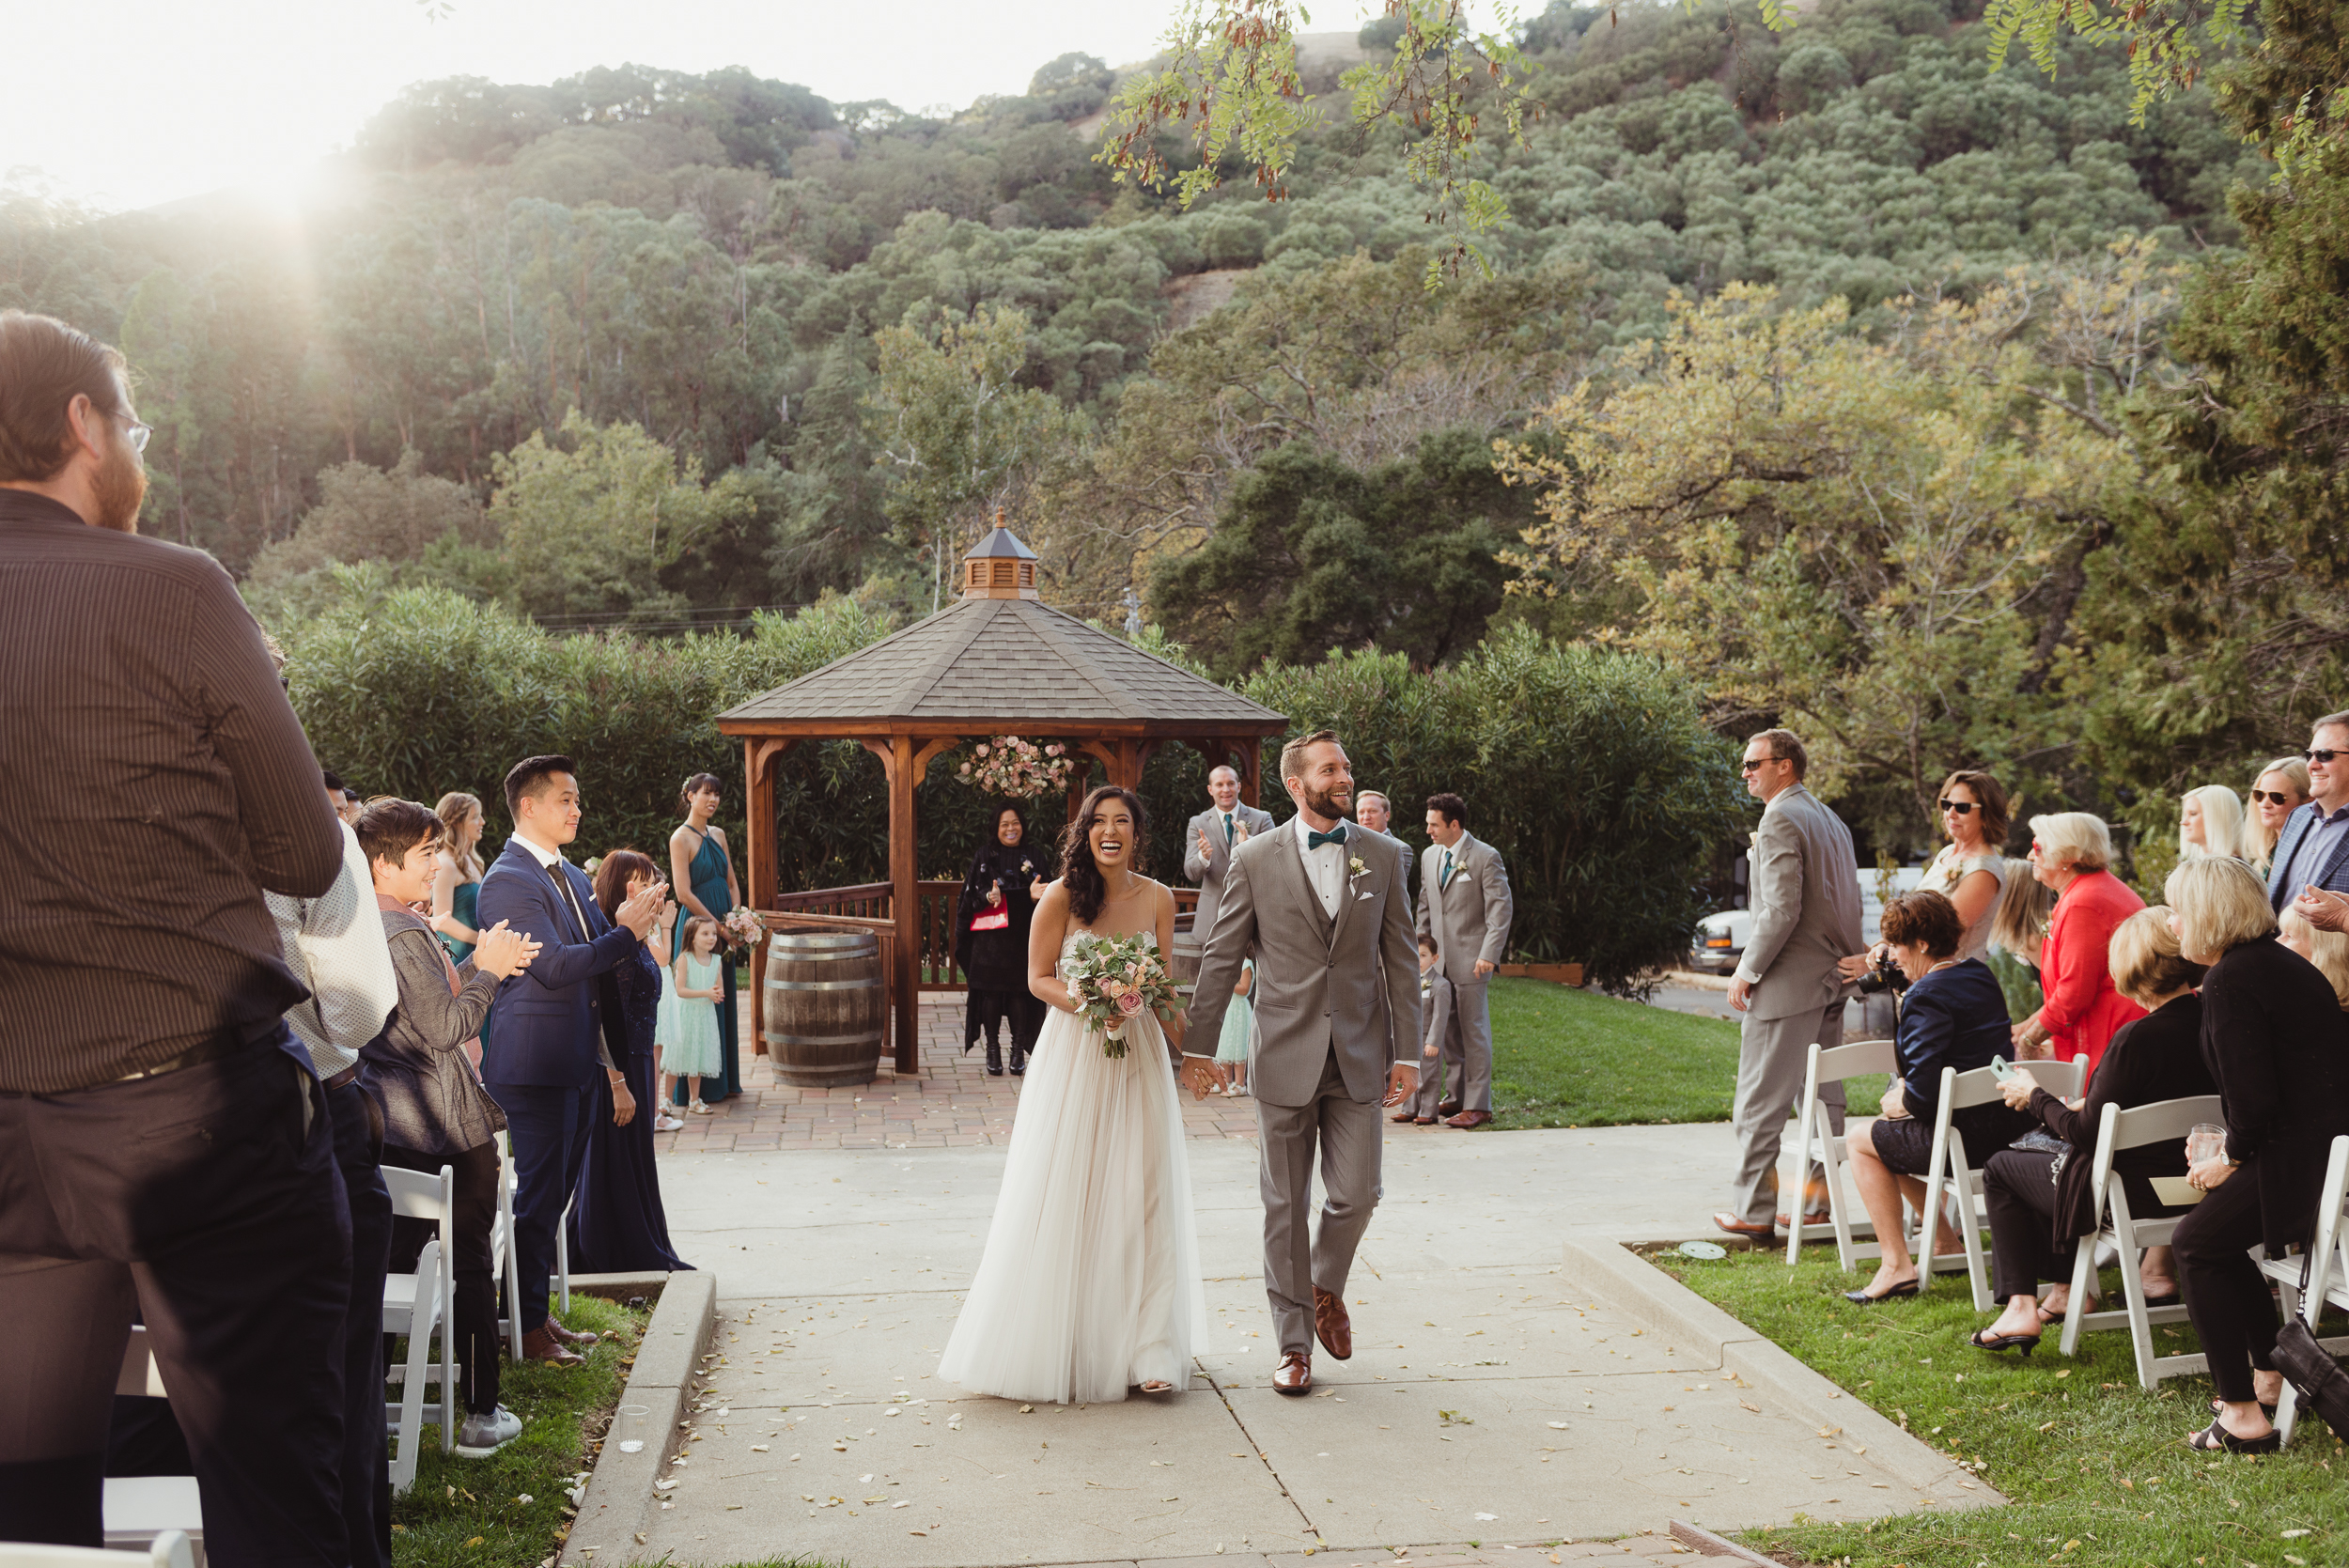 31-sunol-elliston-vineyard-wedding-vivianchen-205.jpg